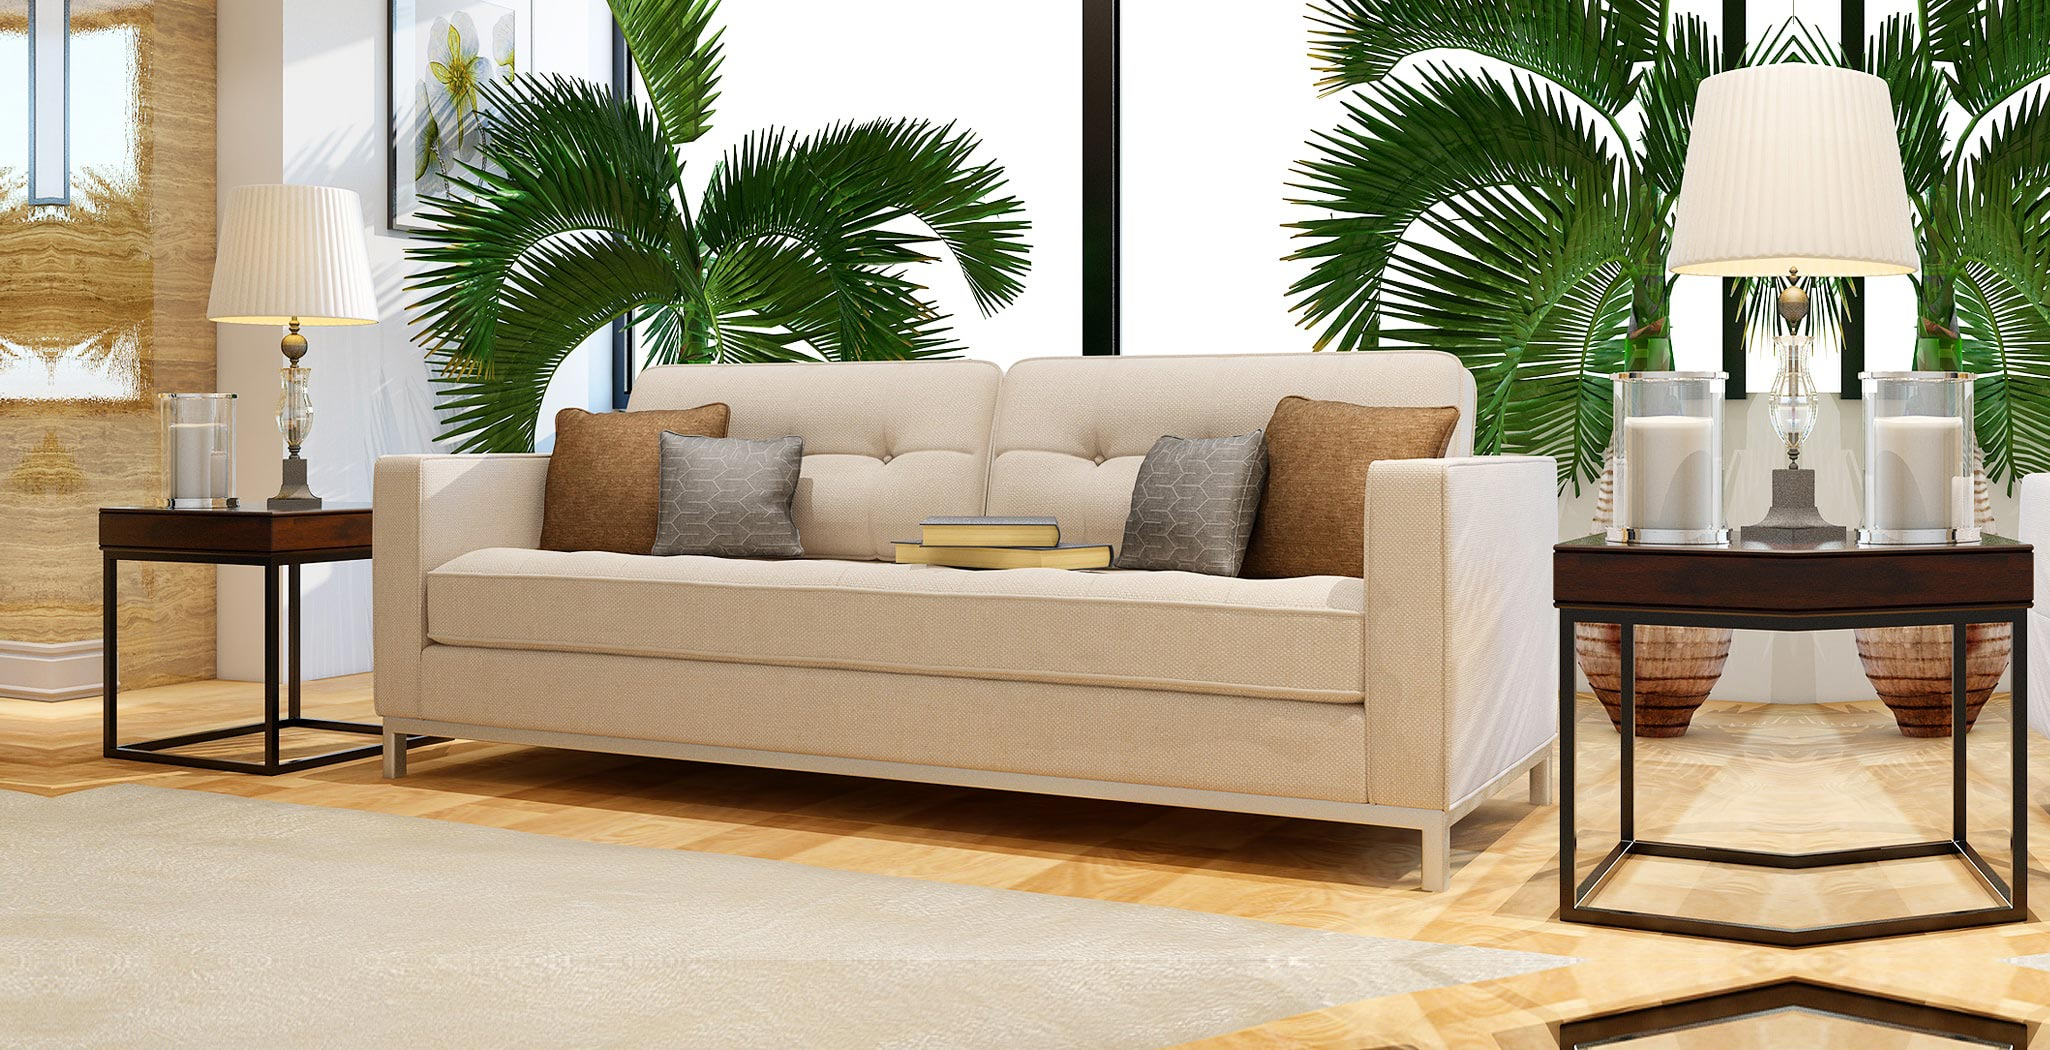 oxford sofa furniture gallery 1